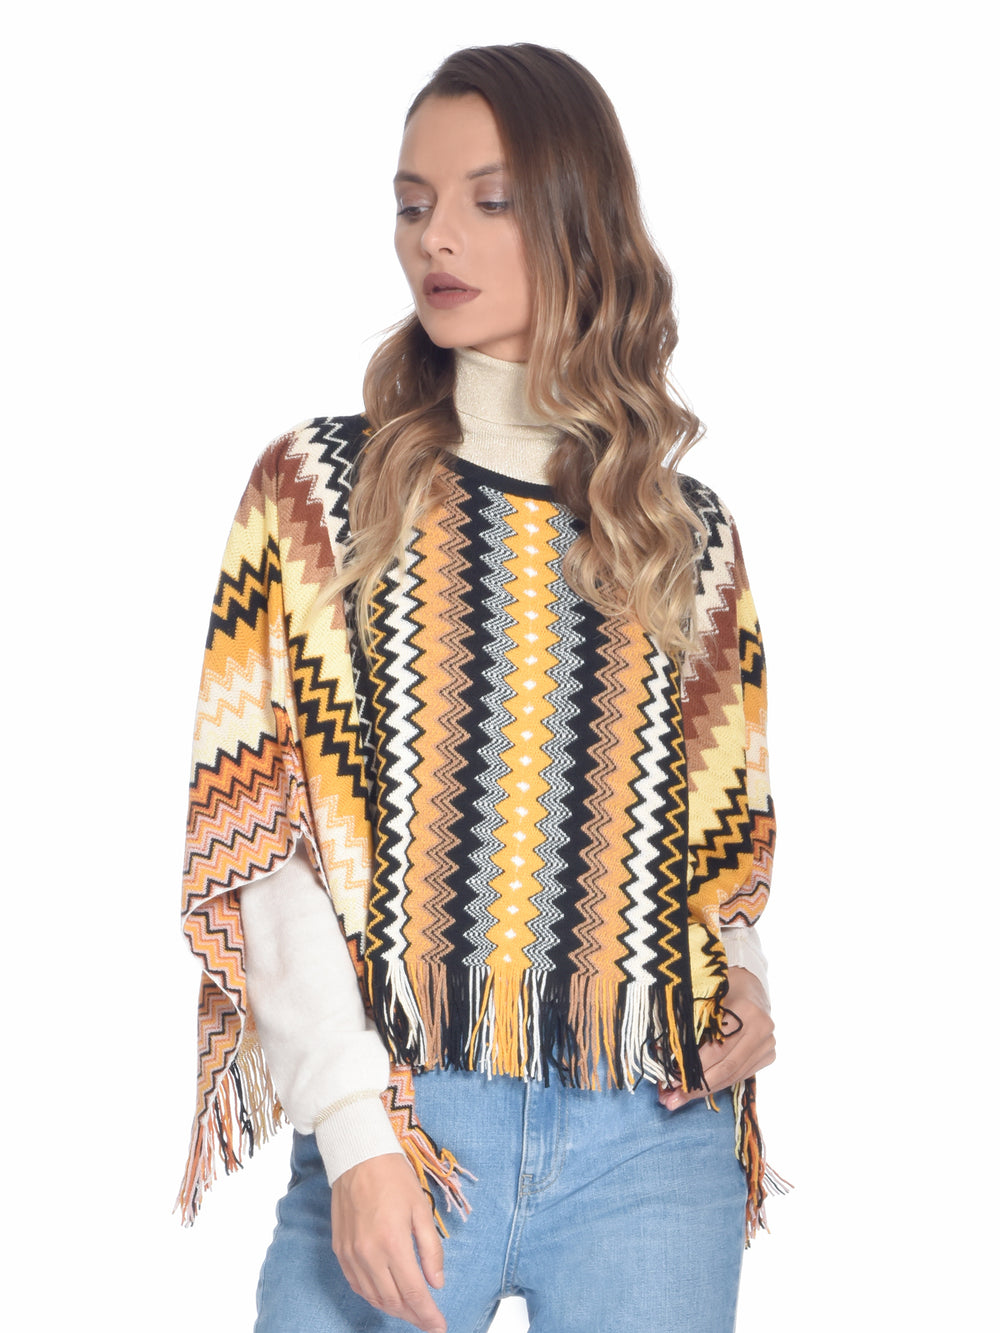 Knitted Poncho Orange/Black, MISSONI - elilhaam.com